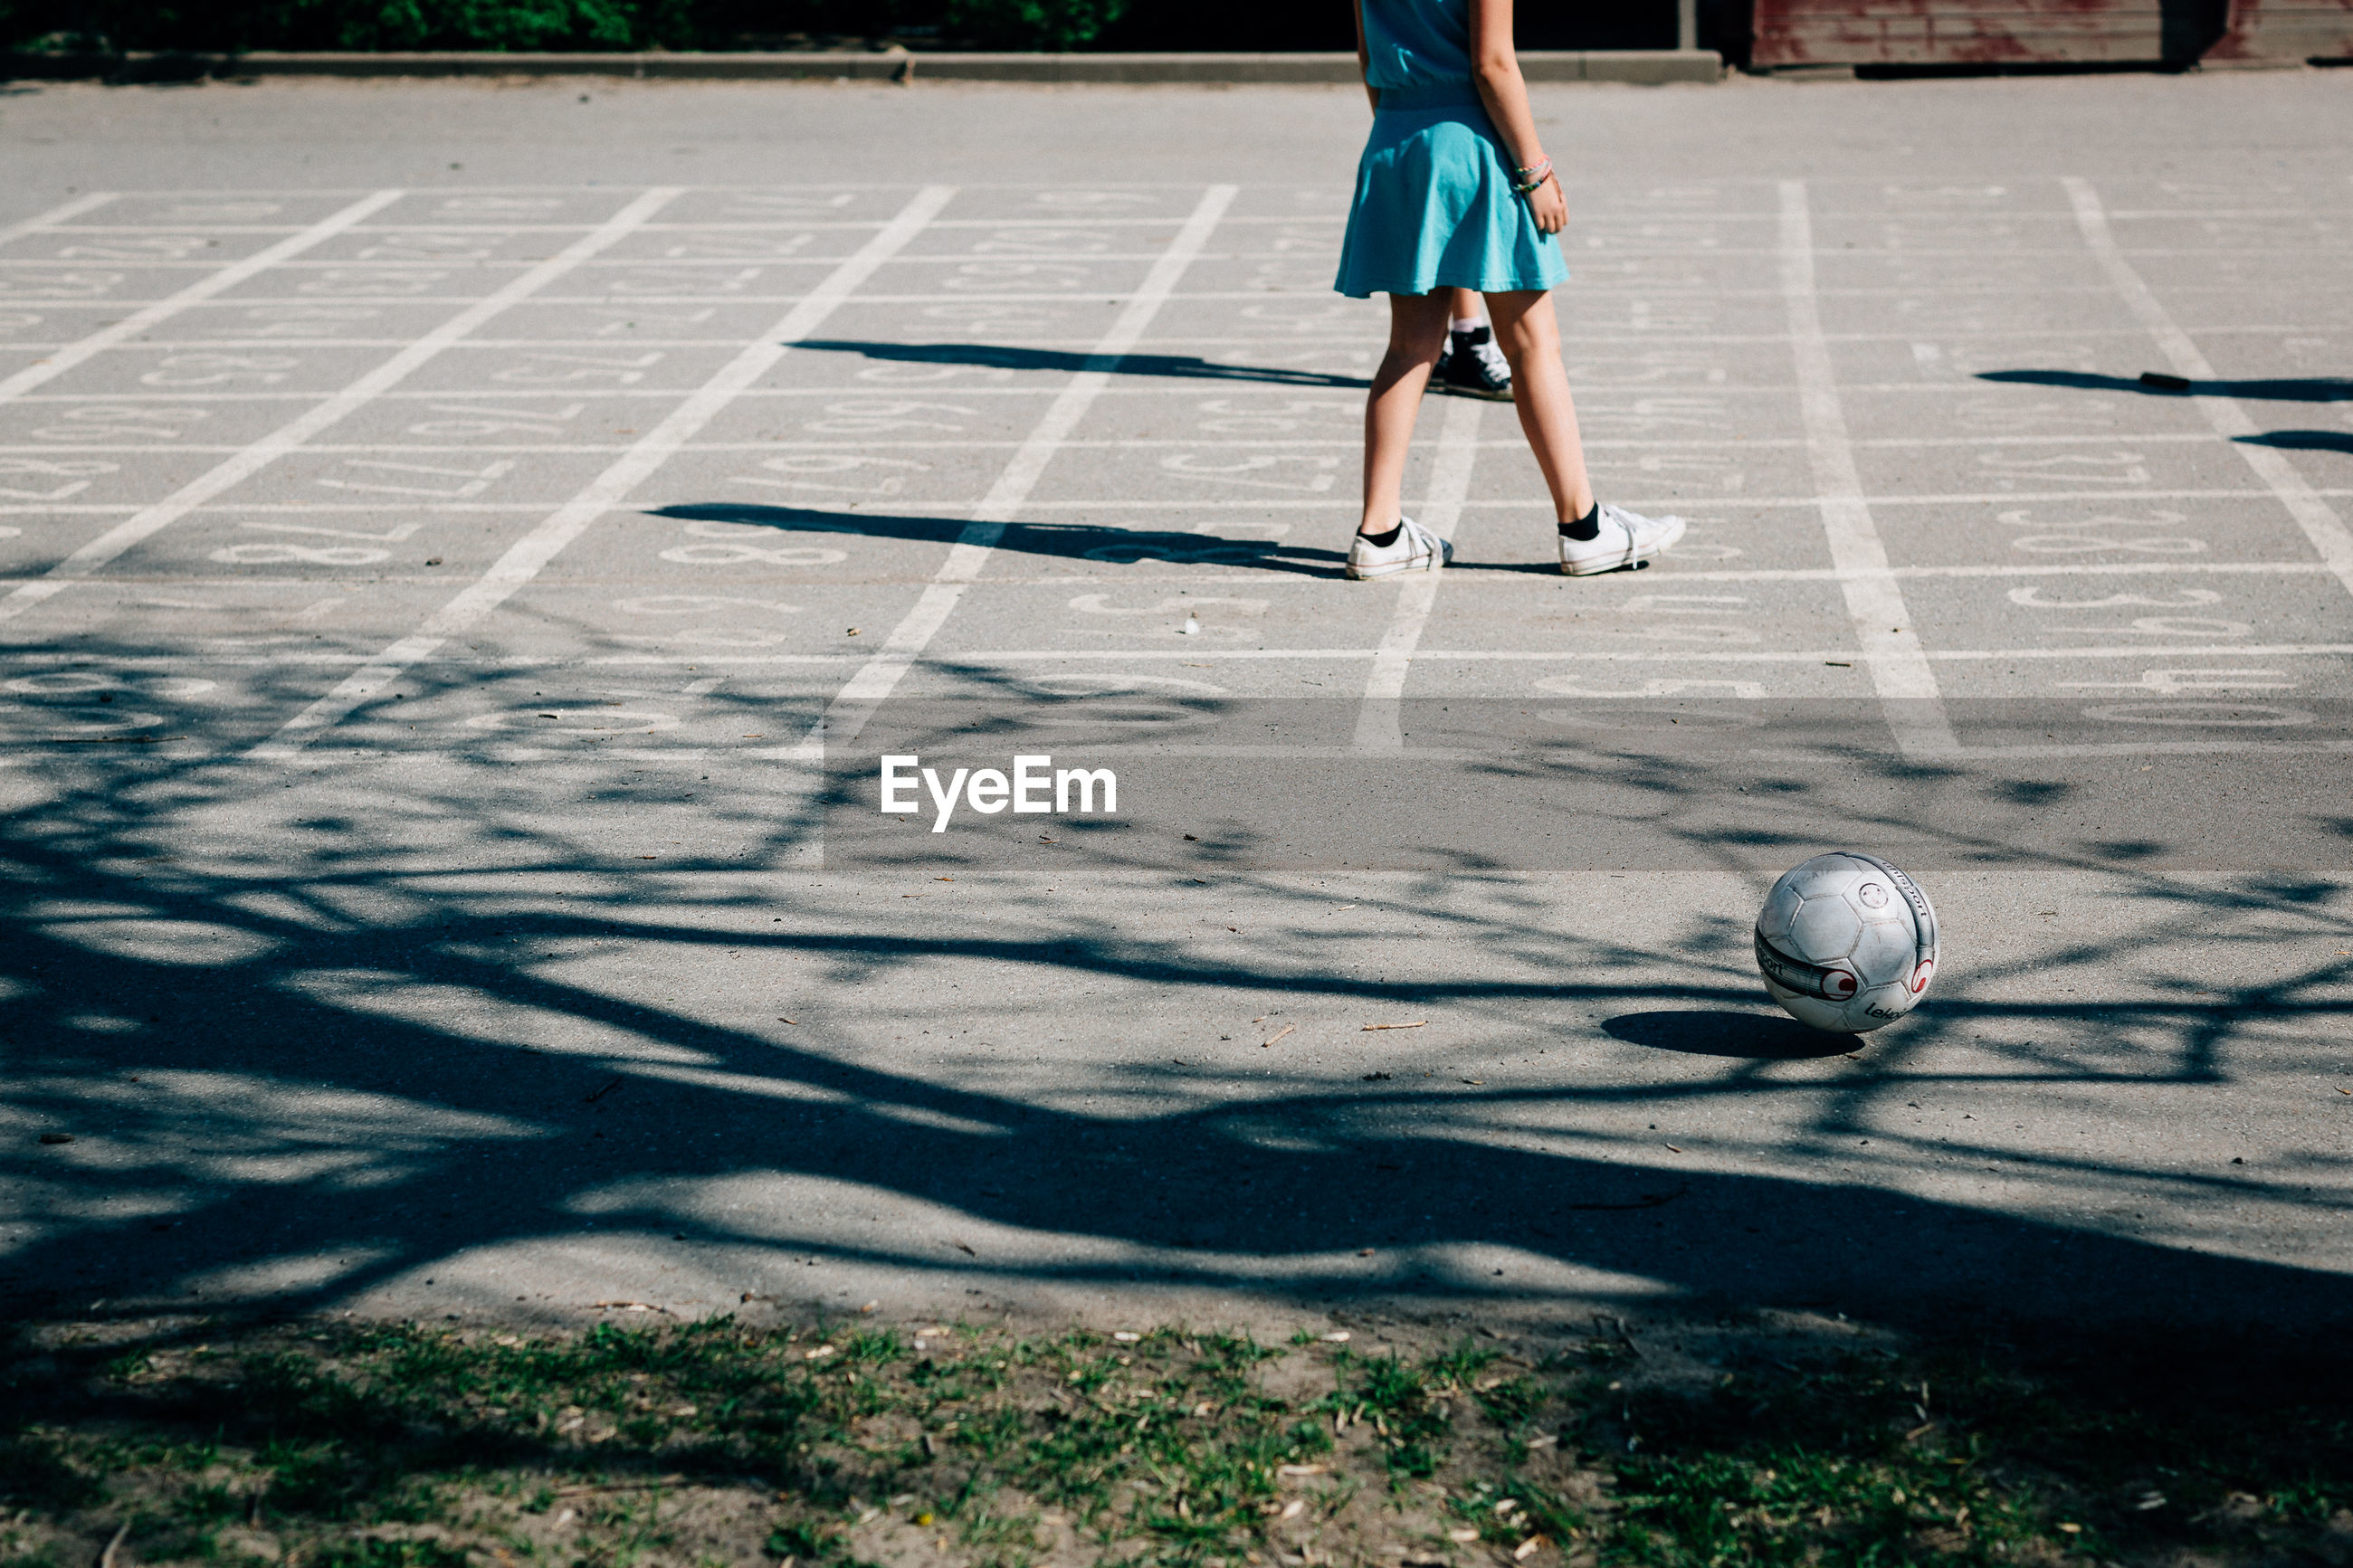 Low section of woman by soccer ball on playing field